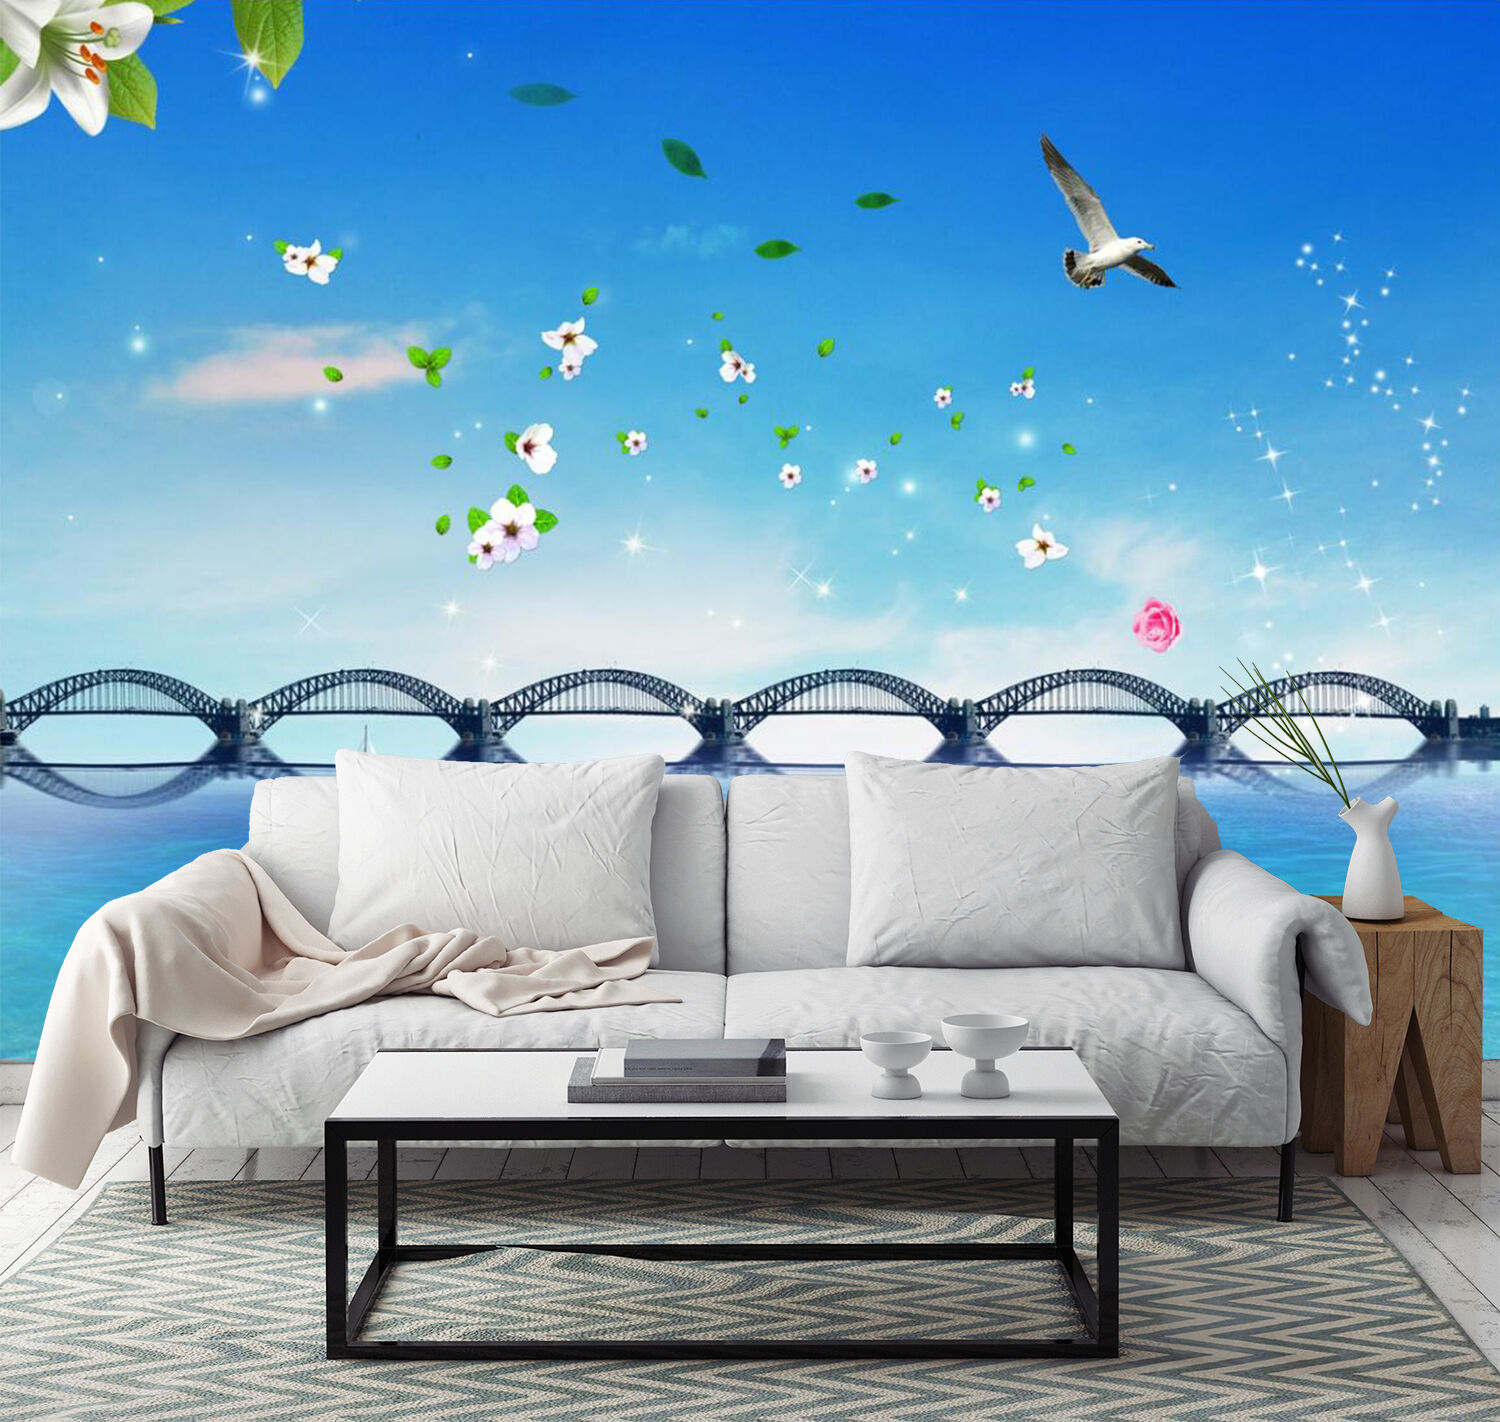 3D Bridge Flower Cartoon 4433 Wall Paper Wall Print Decal Wall AJ WALLPAPER CA